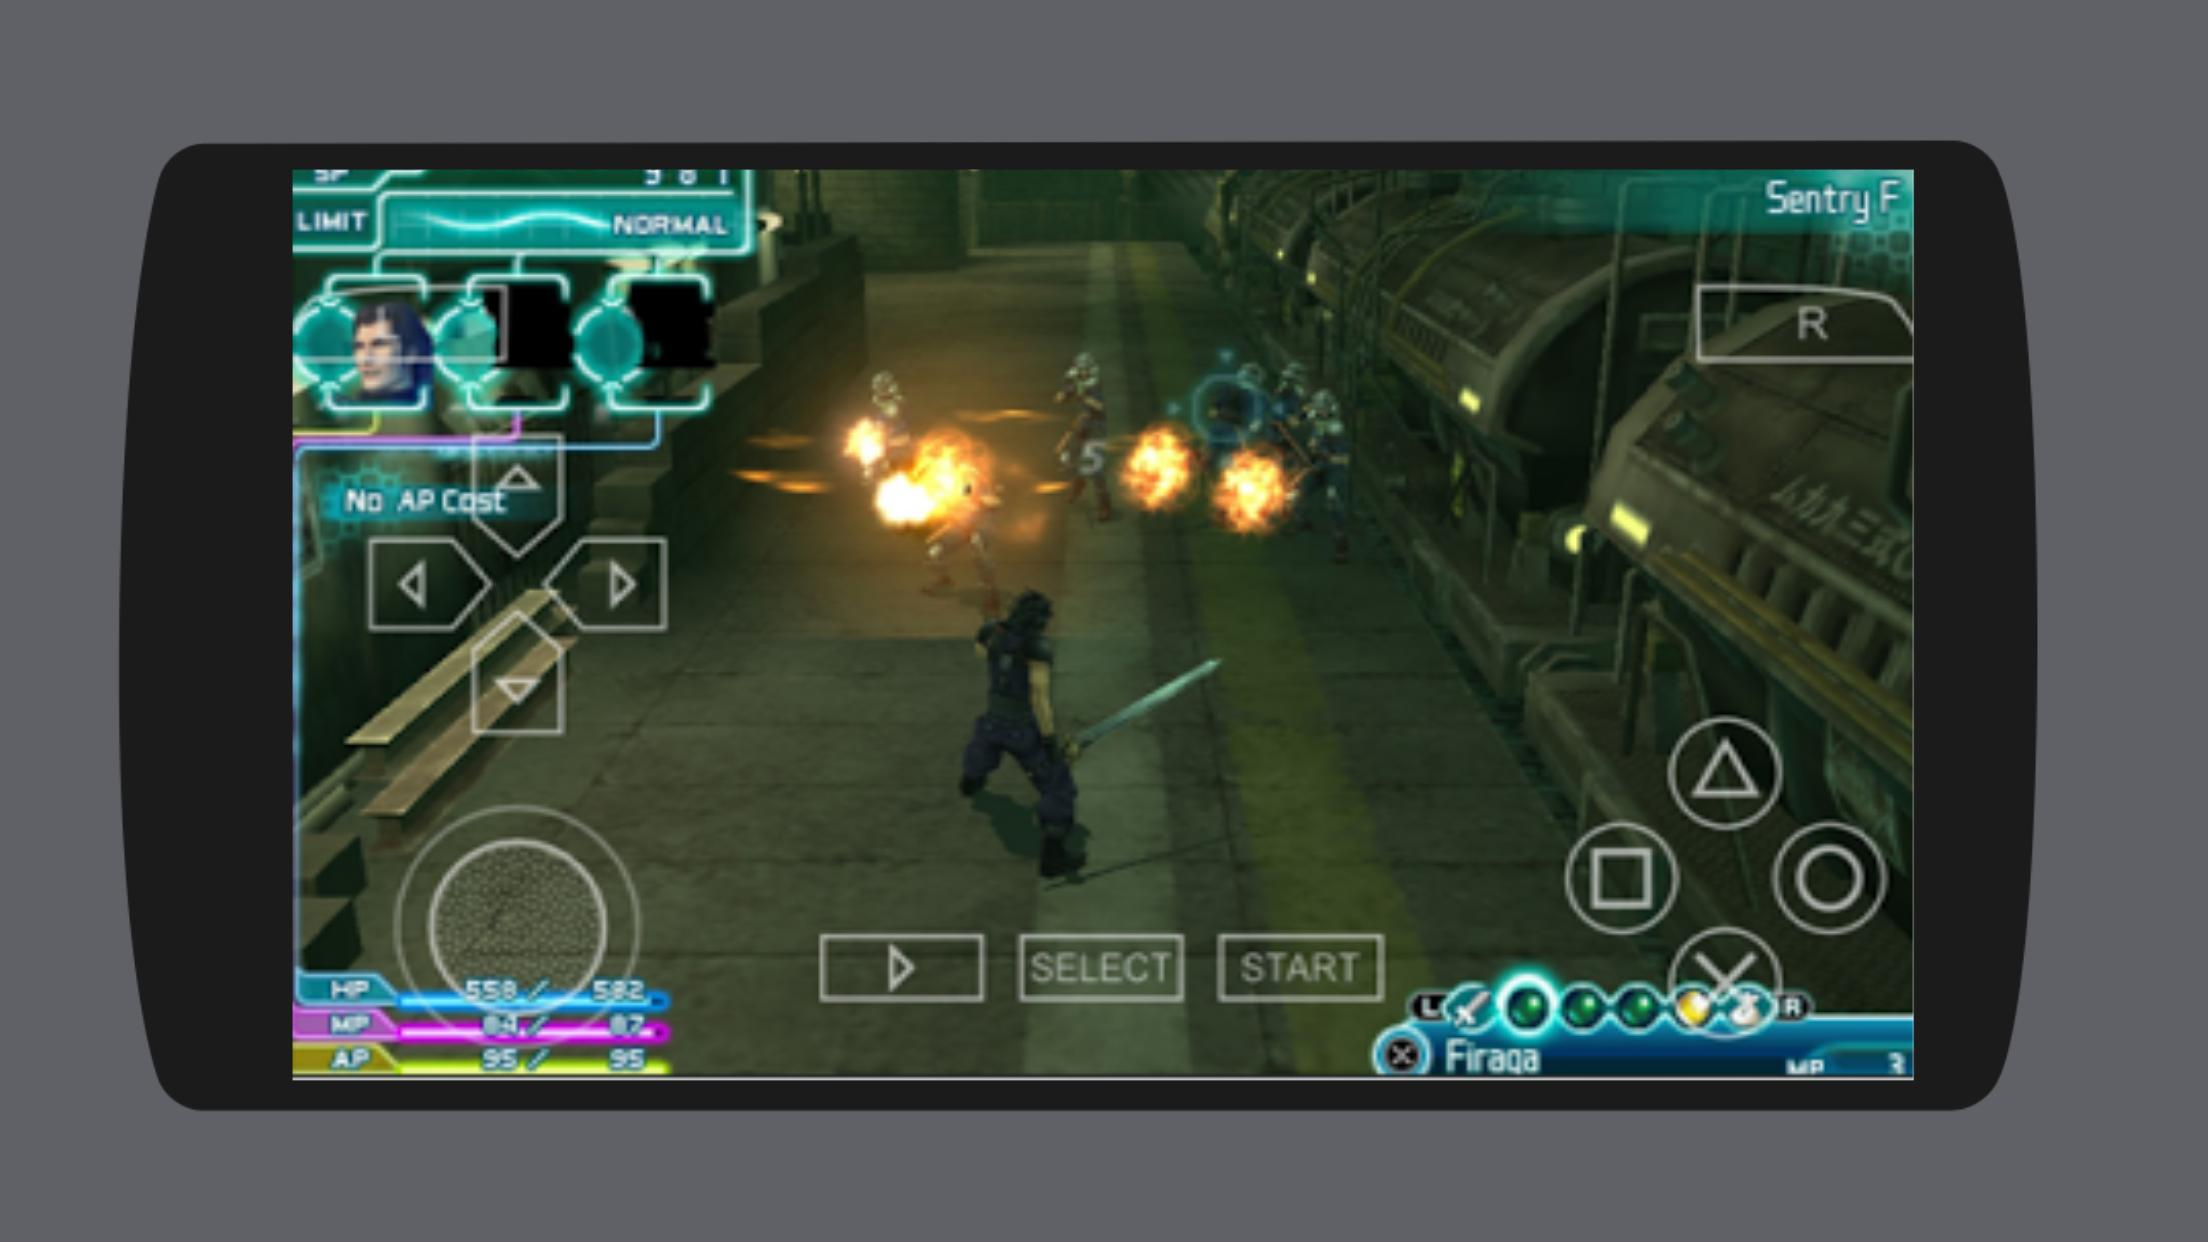 Ppsspp New Emulator Pro For Android Apk Download